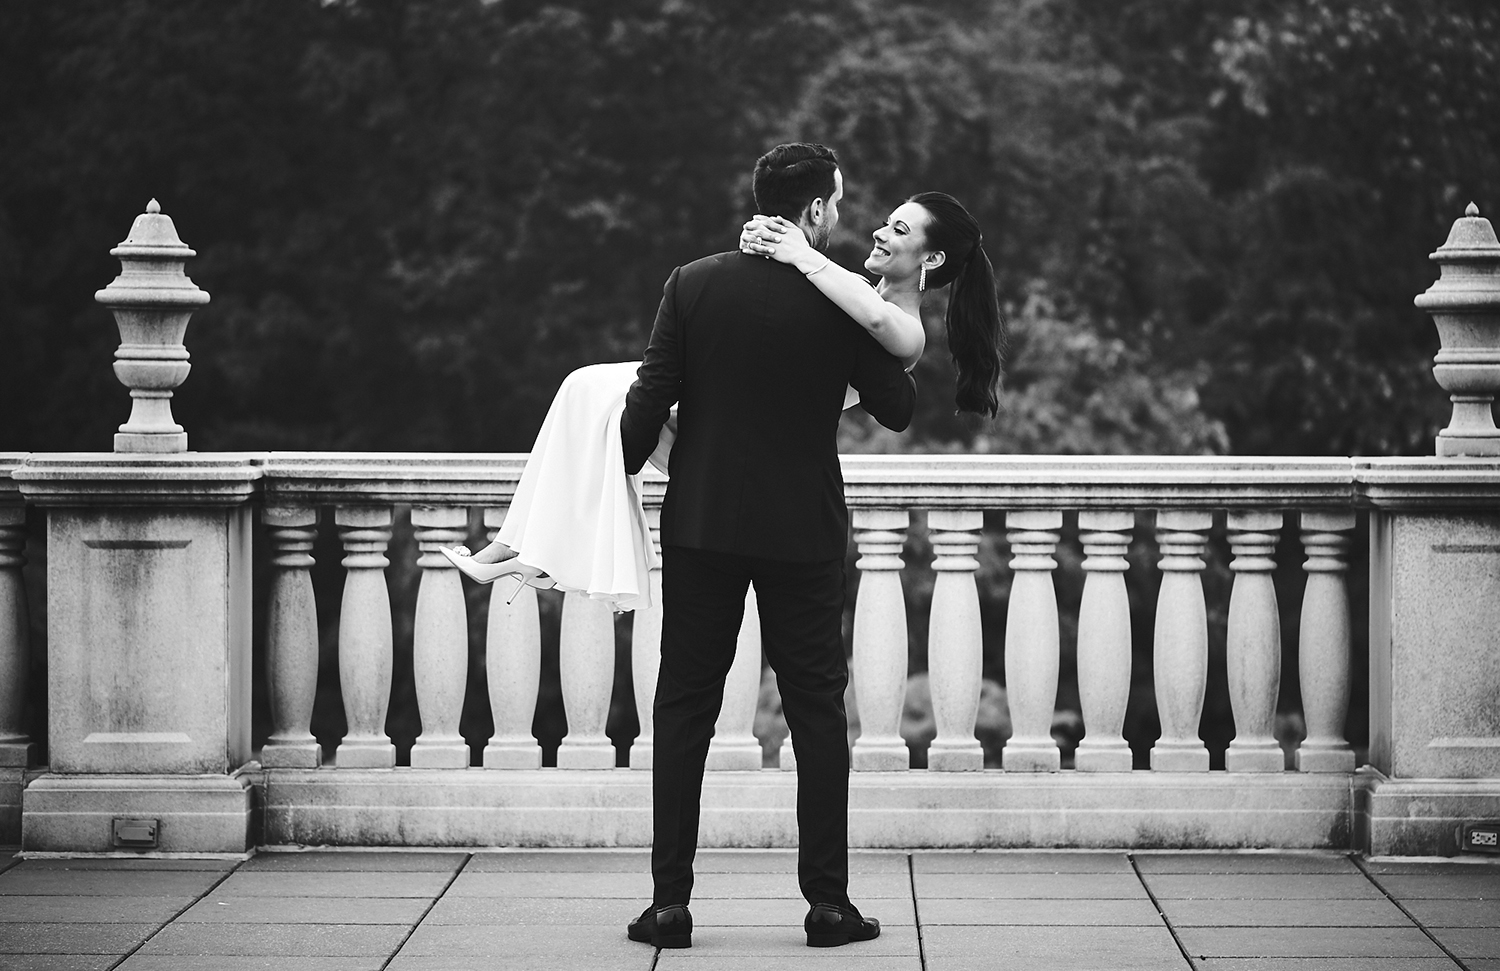 180519_PalaceatSomersetParkWeddingPhotography_NJWeddingPhotographer_By_BriJohnsonWeddings_0083.jpg